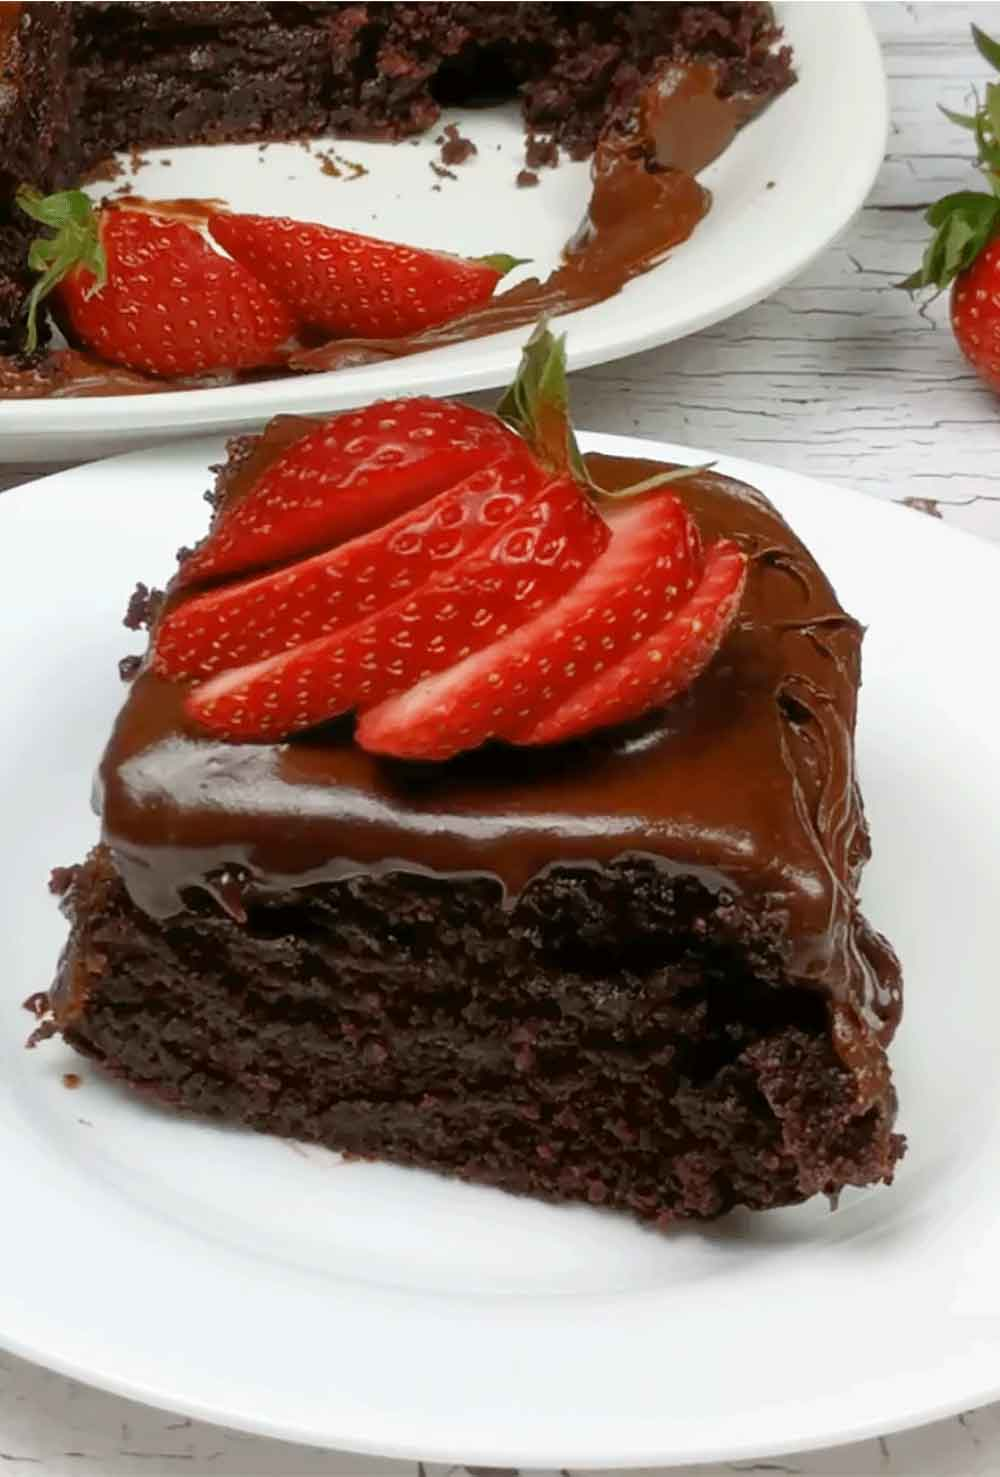 Slice of chocolate mayonnaise cake with sliced strawberies on top shown on white plate with whole cake in background